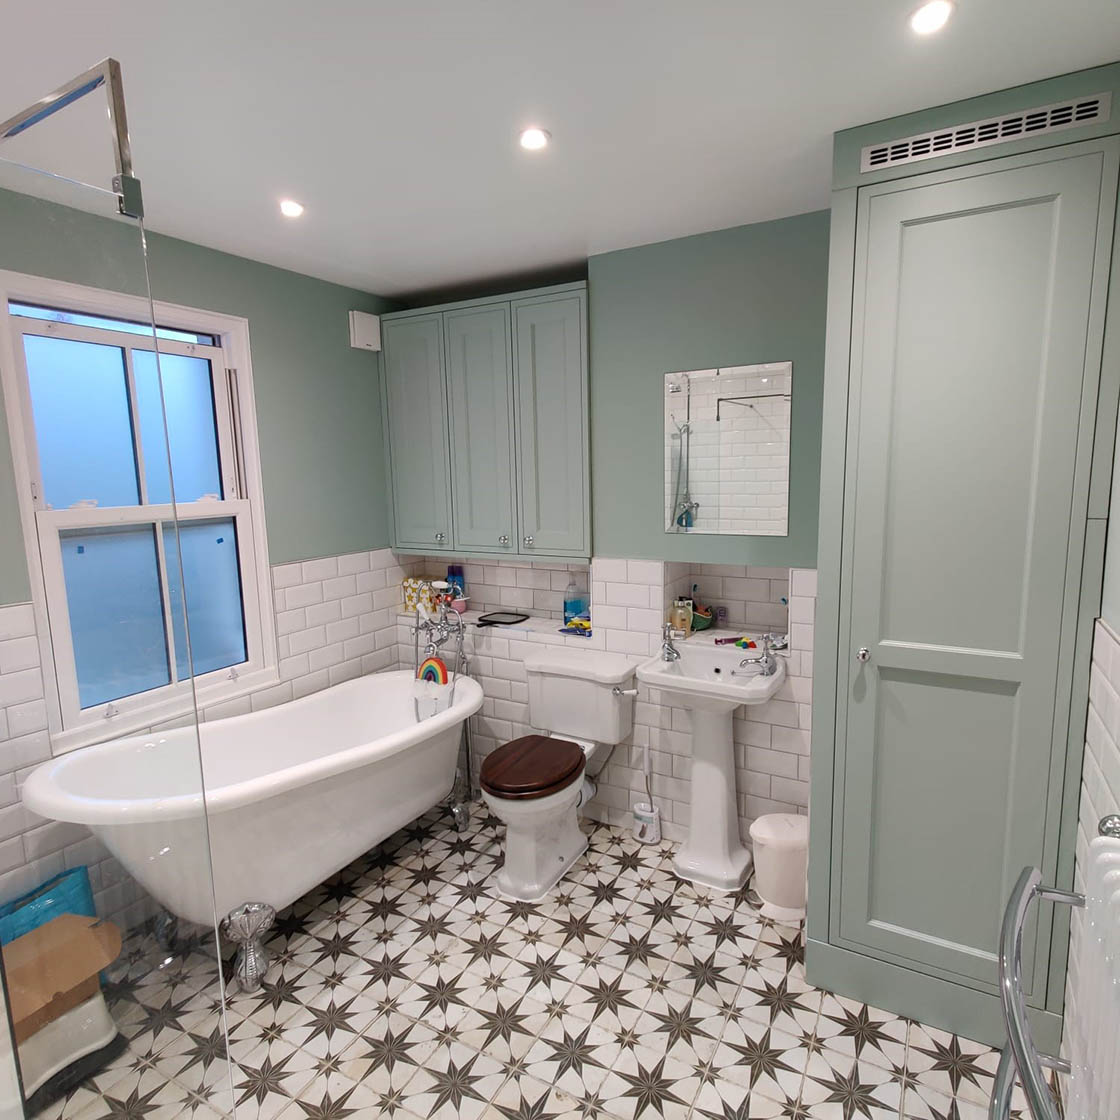 Victorian Style Bathroom Renovation in Redhill Surrey - Revisit Picture 4